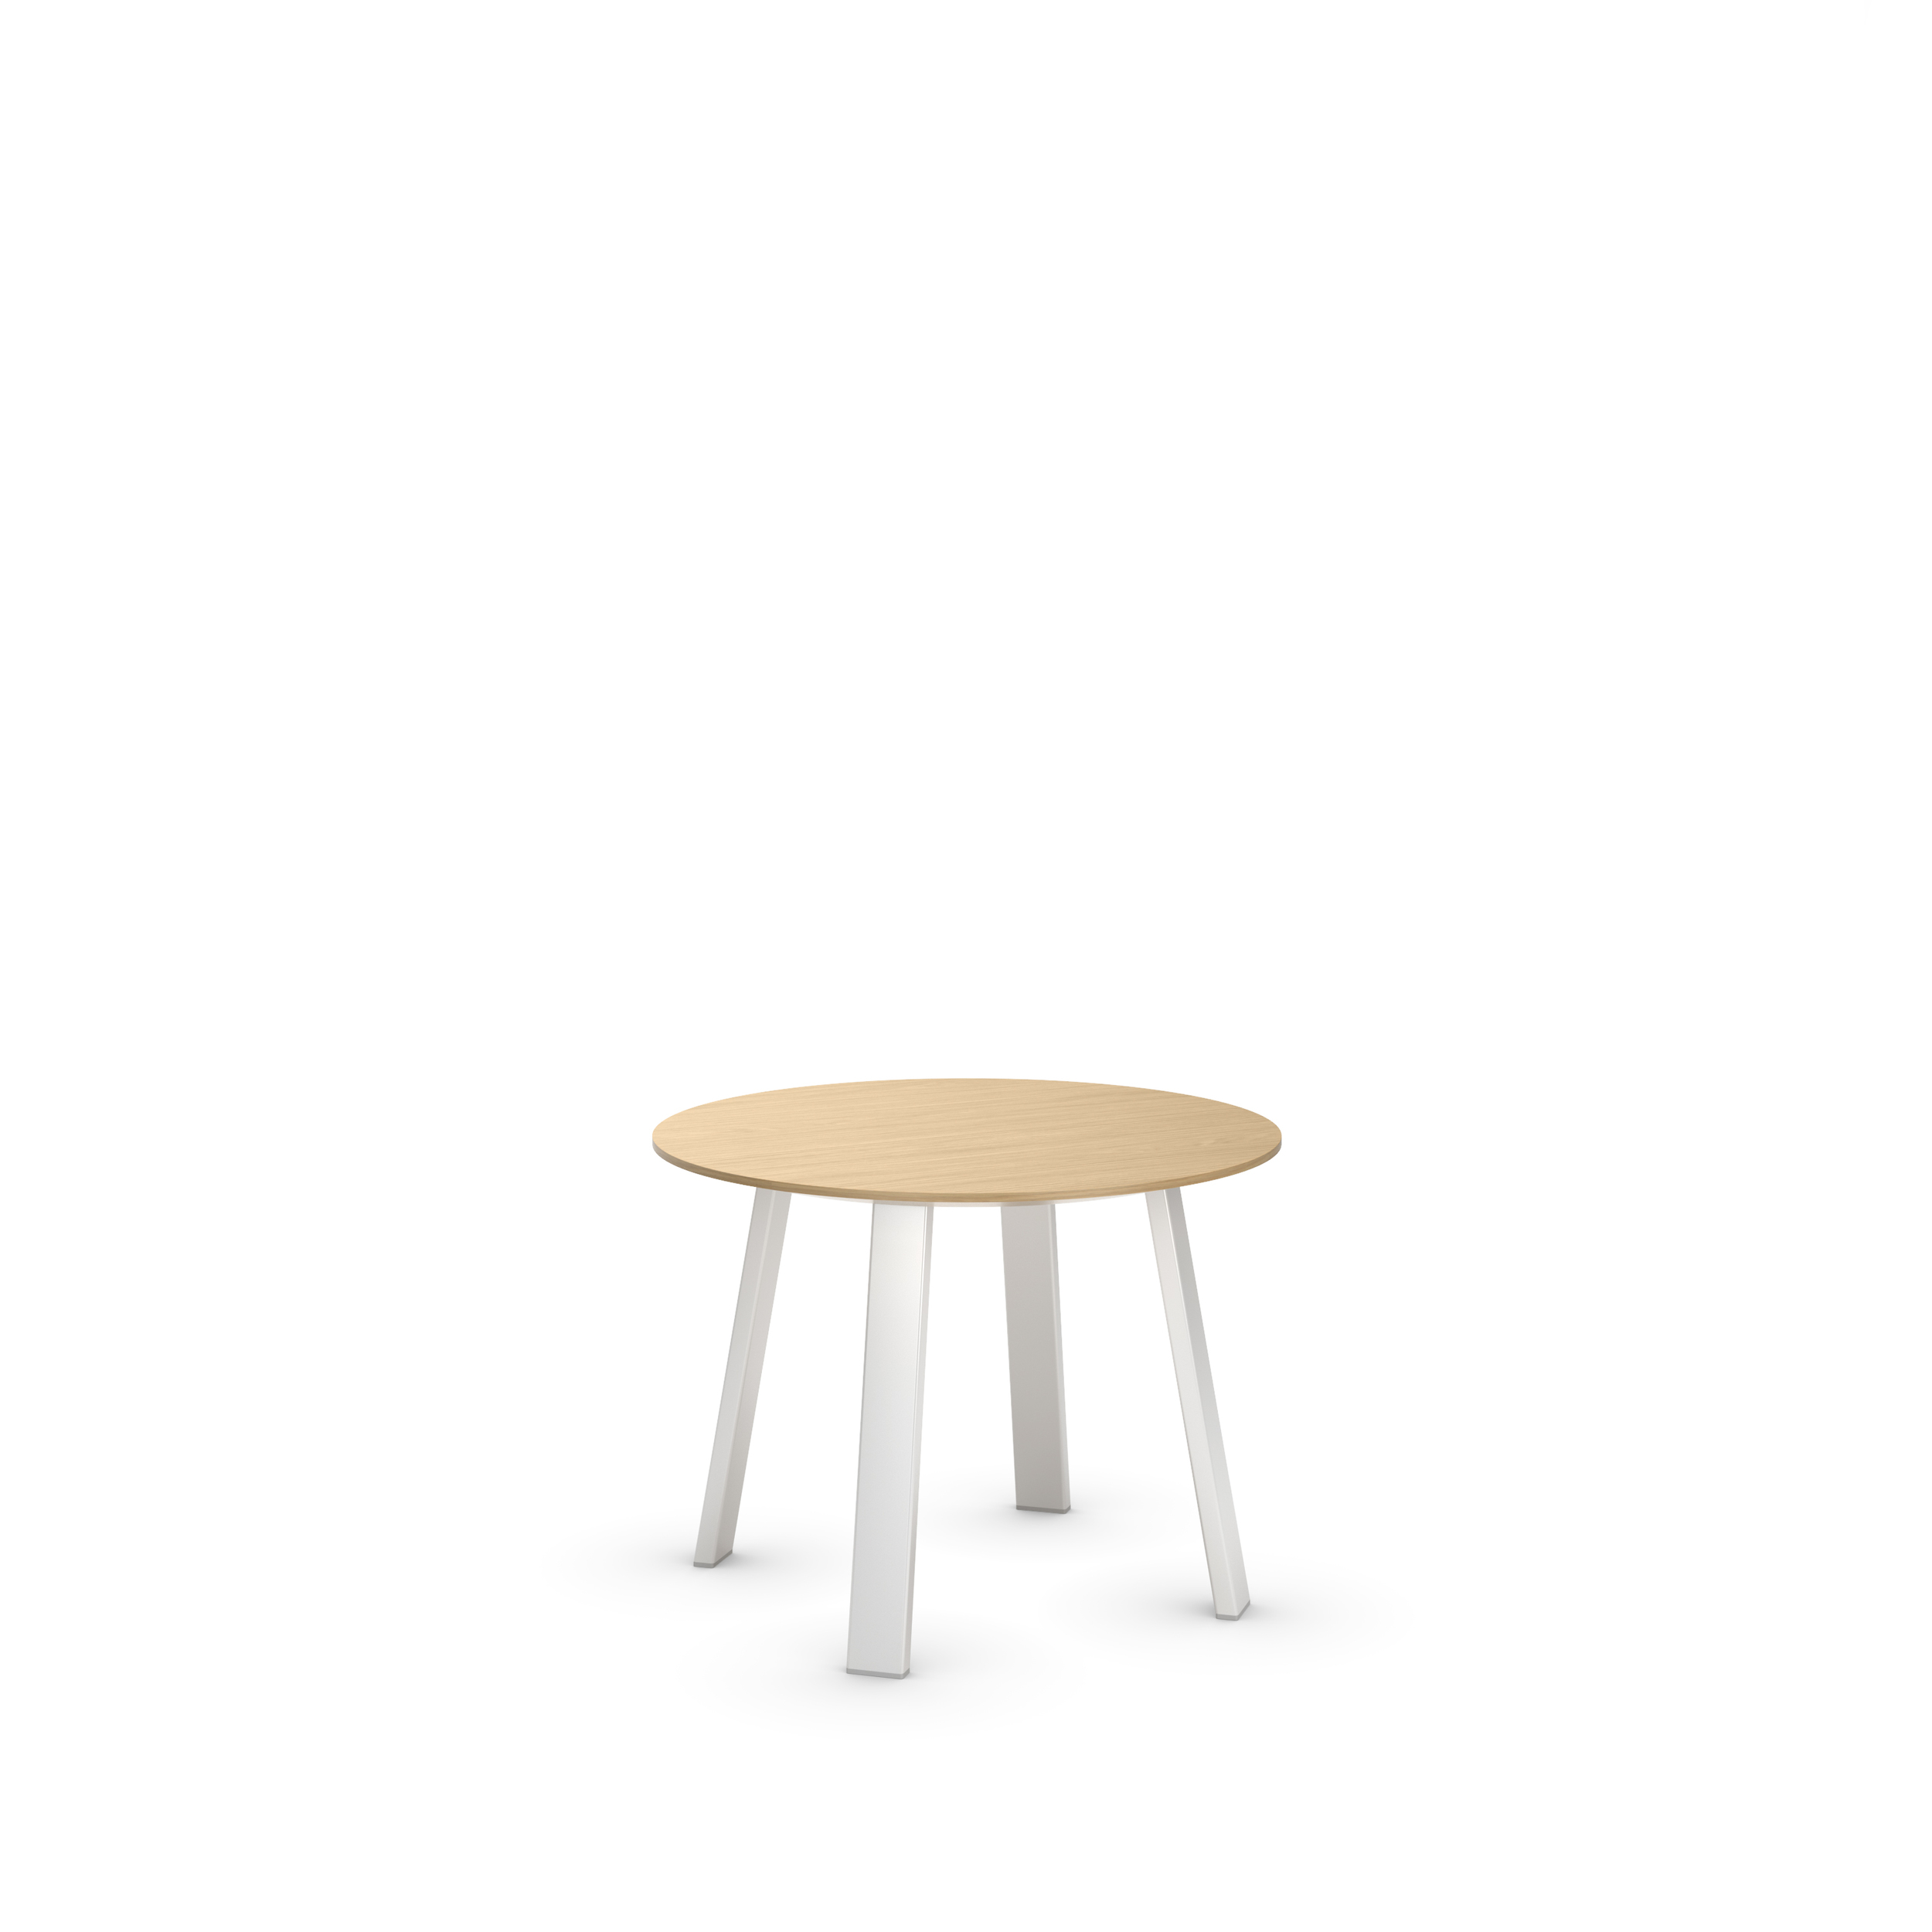 Round Occasional Table.jpg